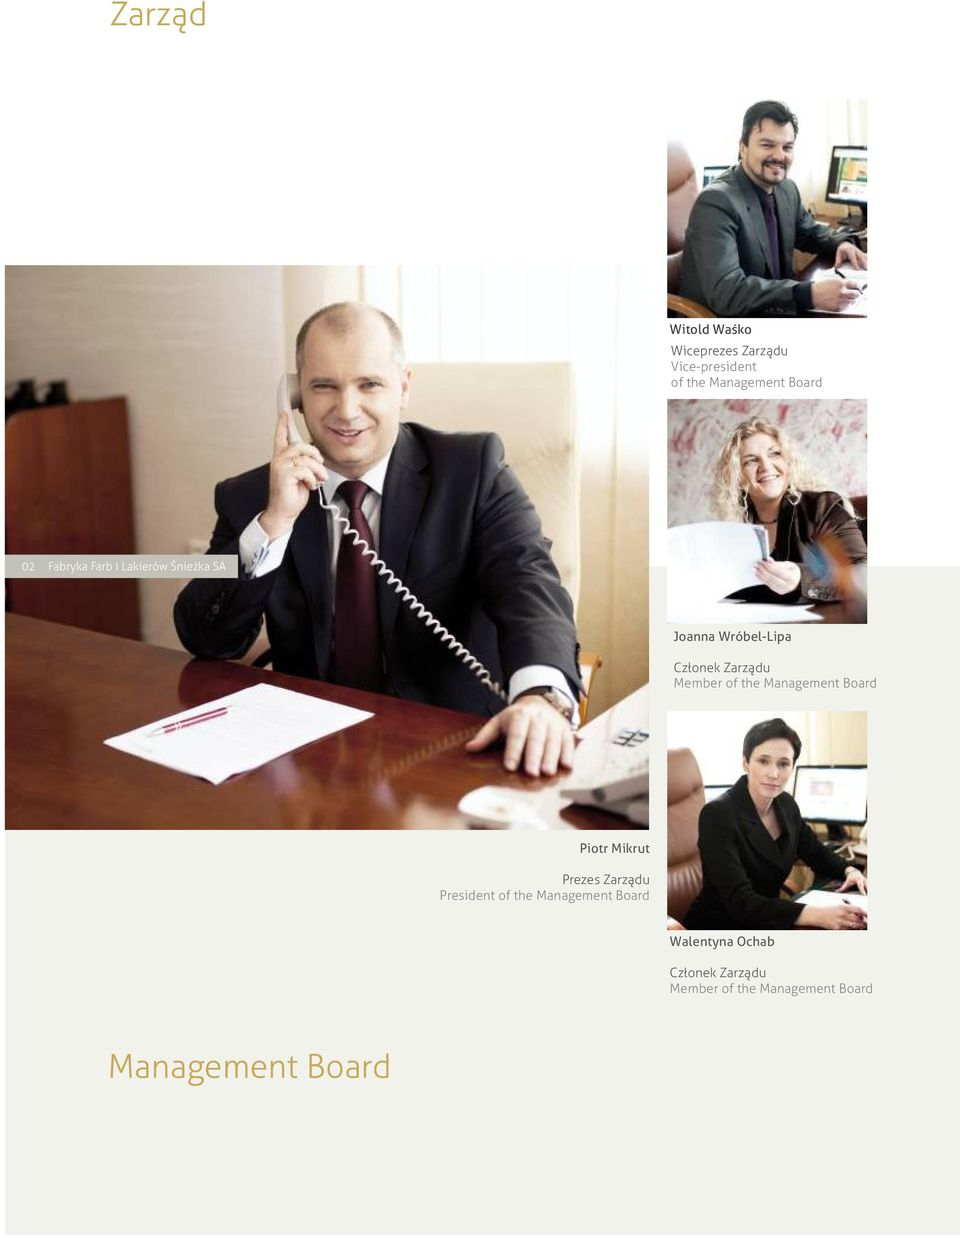 the Management Board Piotr Mikrut Prezes Zarządu President of the Management